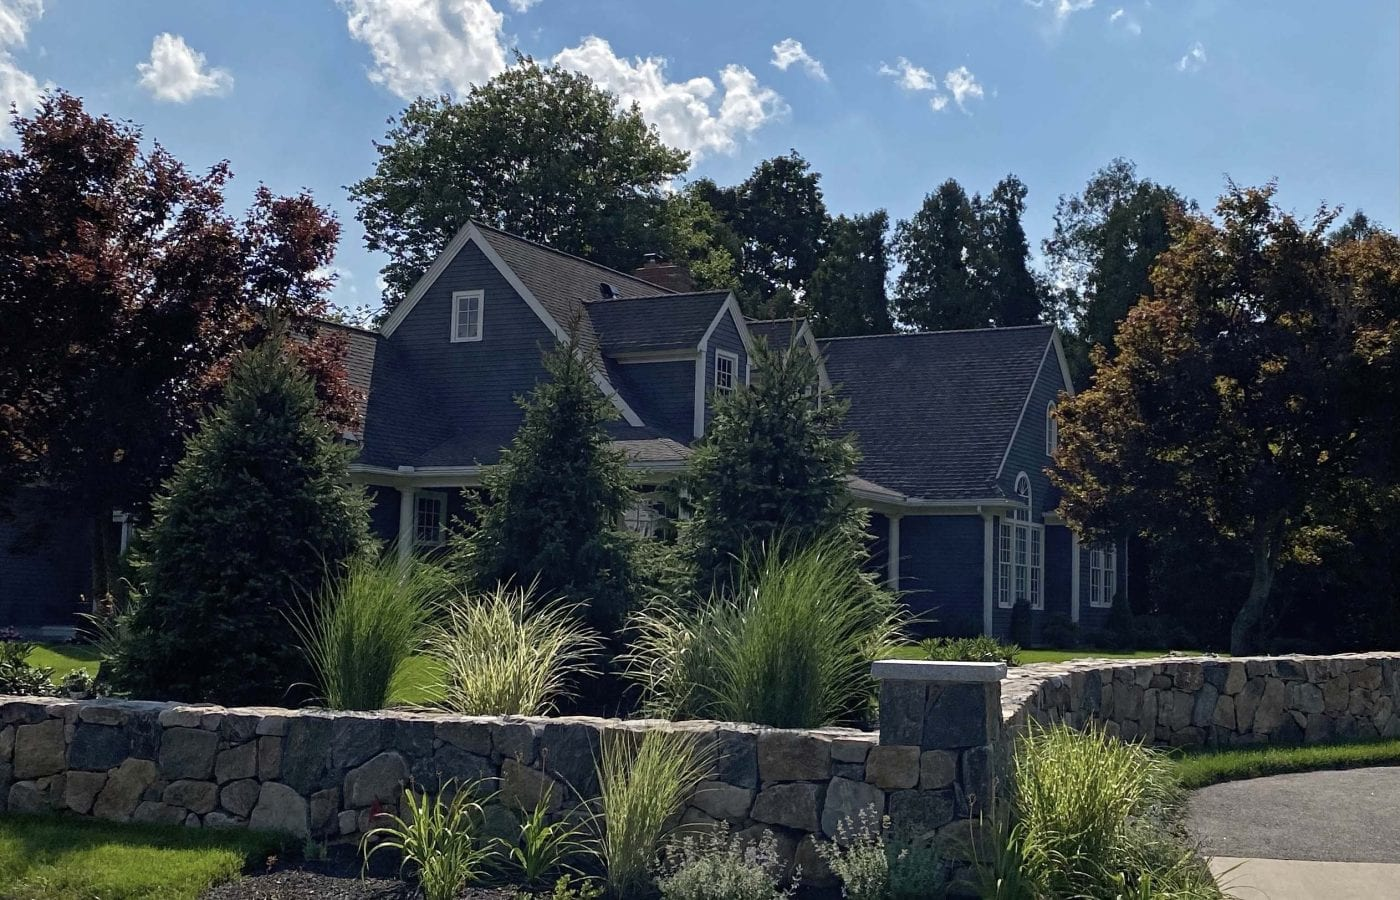 This picture displays the side yard of a recent landscape design project we worked on.